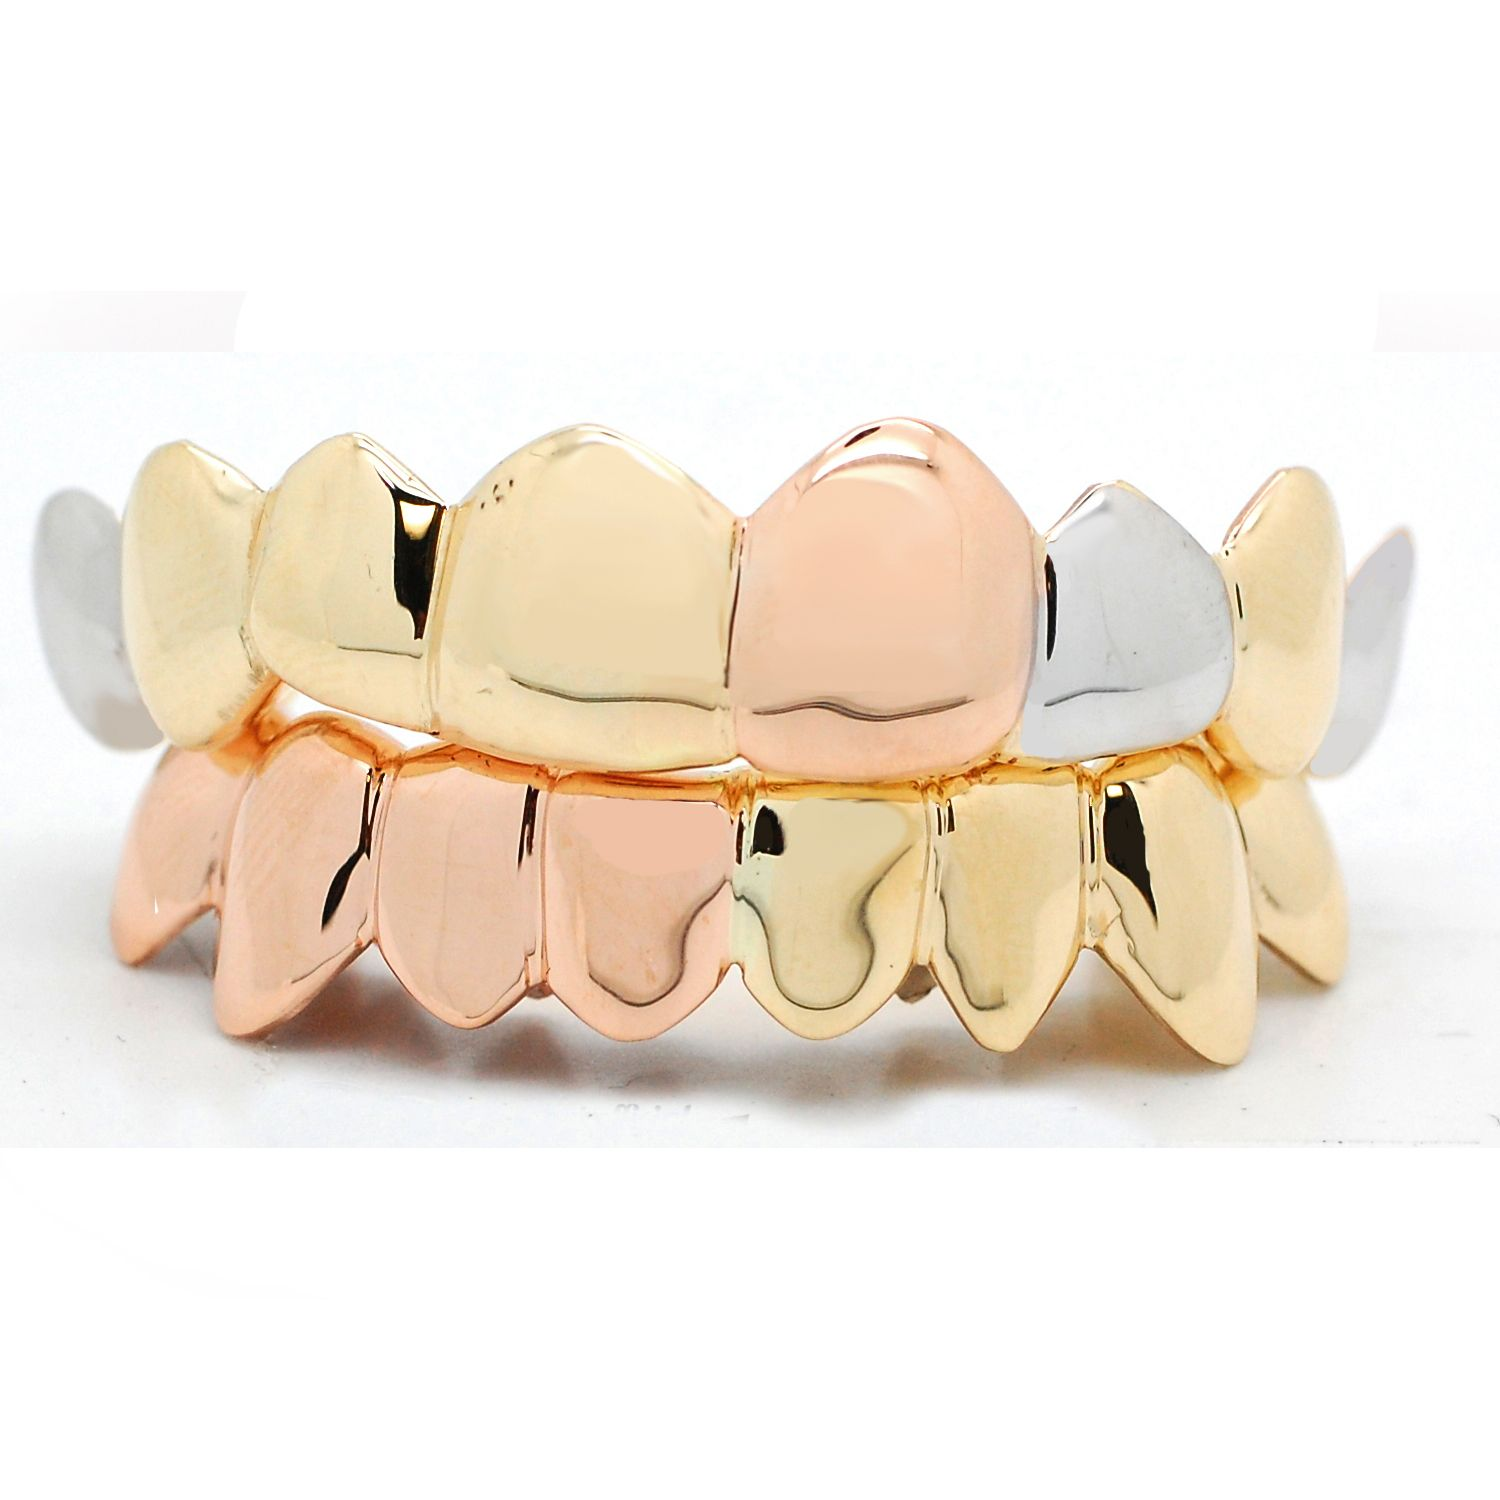 Tricolor Rose Yellow White Gold Solid Grillz Gold Grillz Grillz Silver Grillz